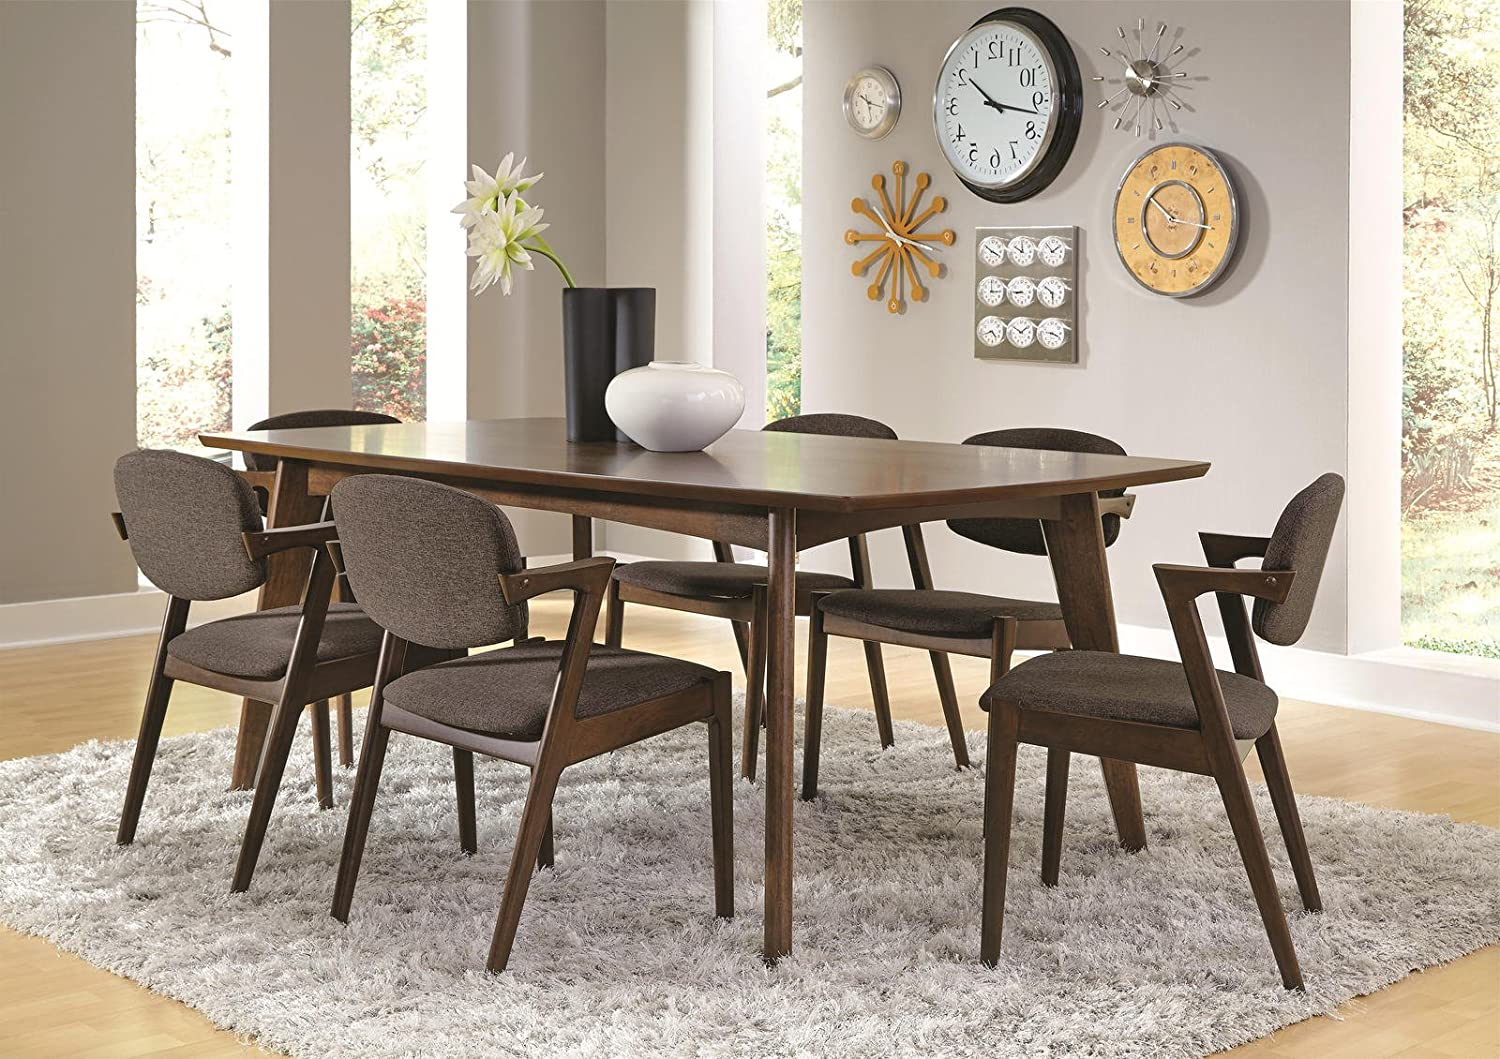 Amazon.com - Coaster Malone Mid-century Casual Dining Room ...